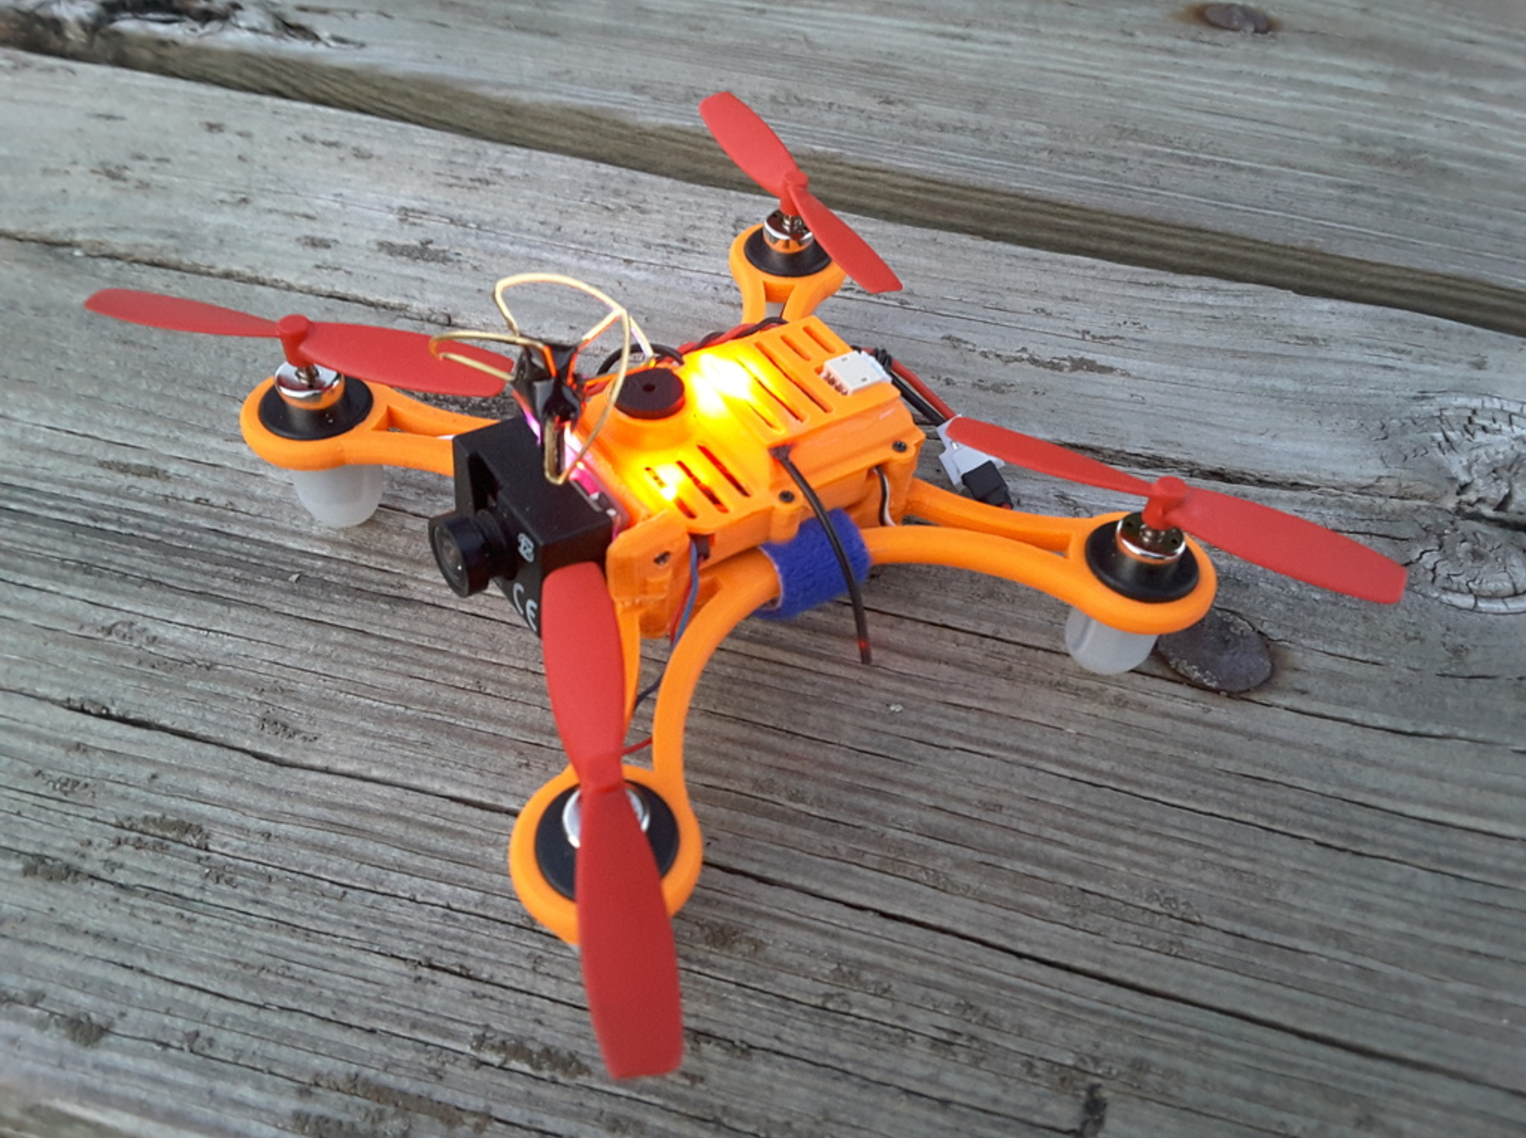 Capture d'écran 2017-02-20 à 11.09.40.png Download free STL file DC110 ABS FPV for SP F3 RACING EVO Brush Flight control • 3D printable model, Microdure